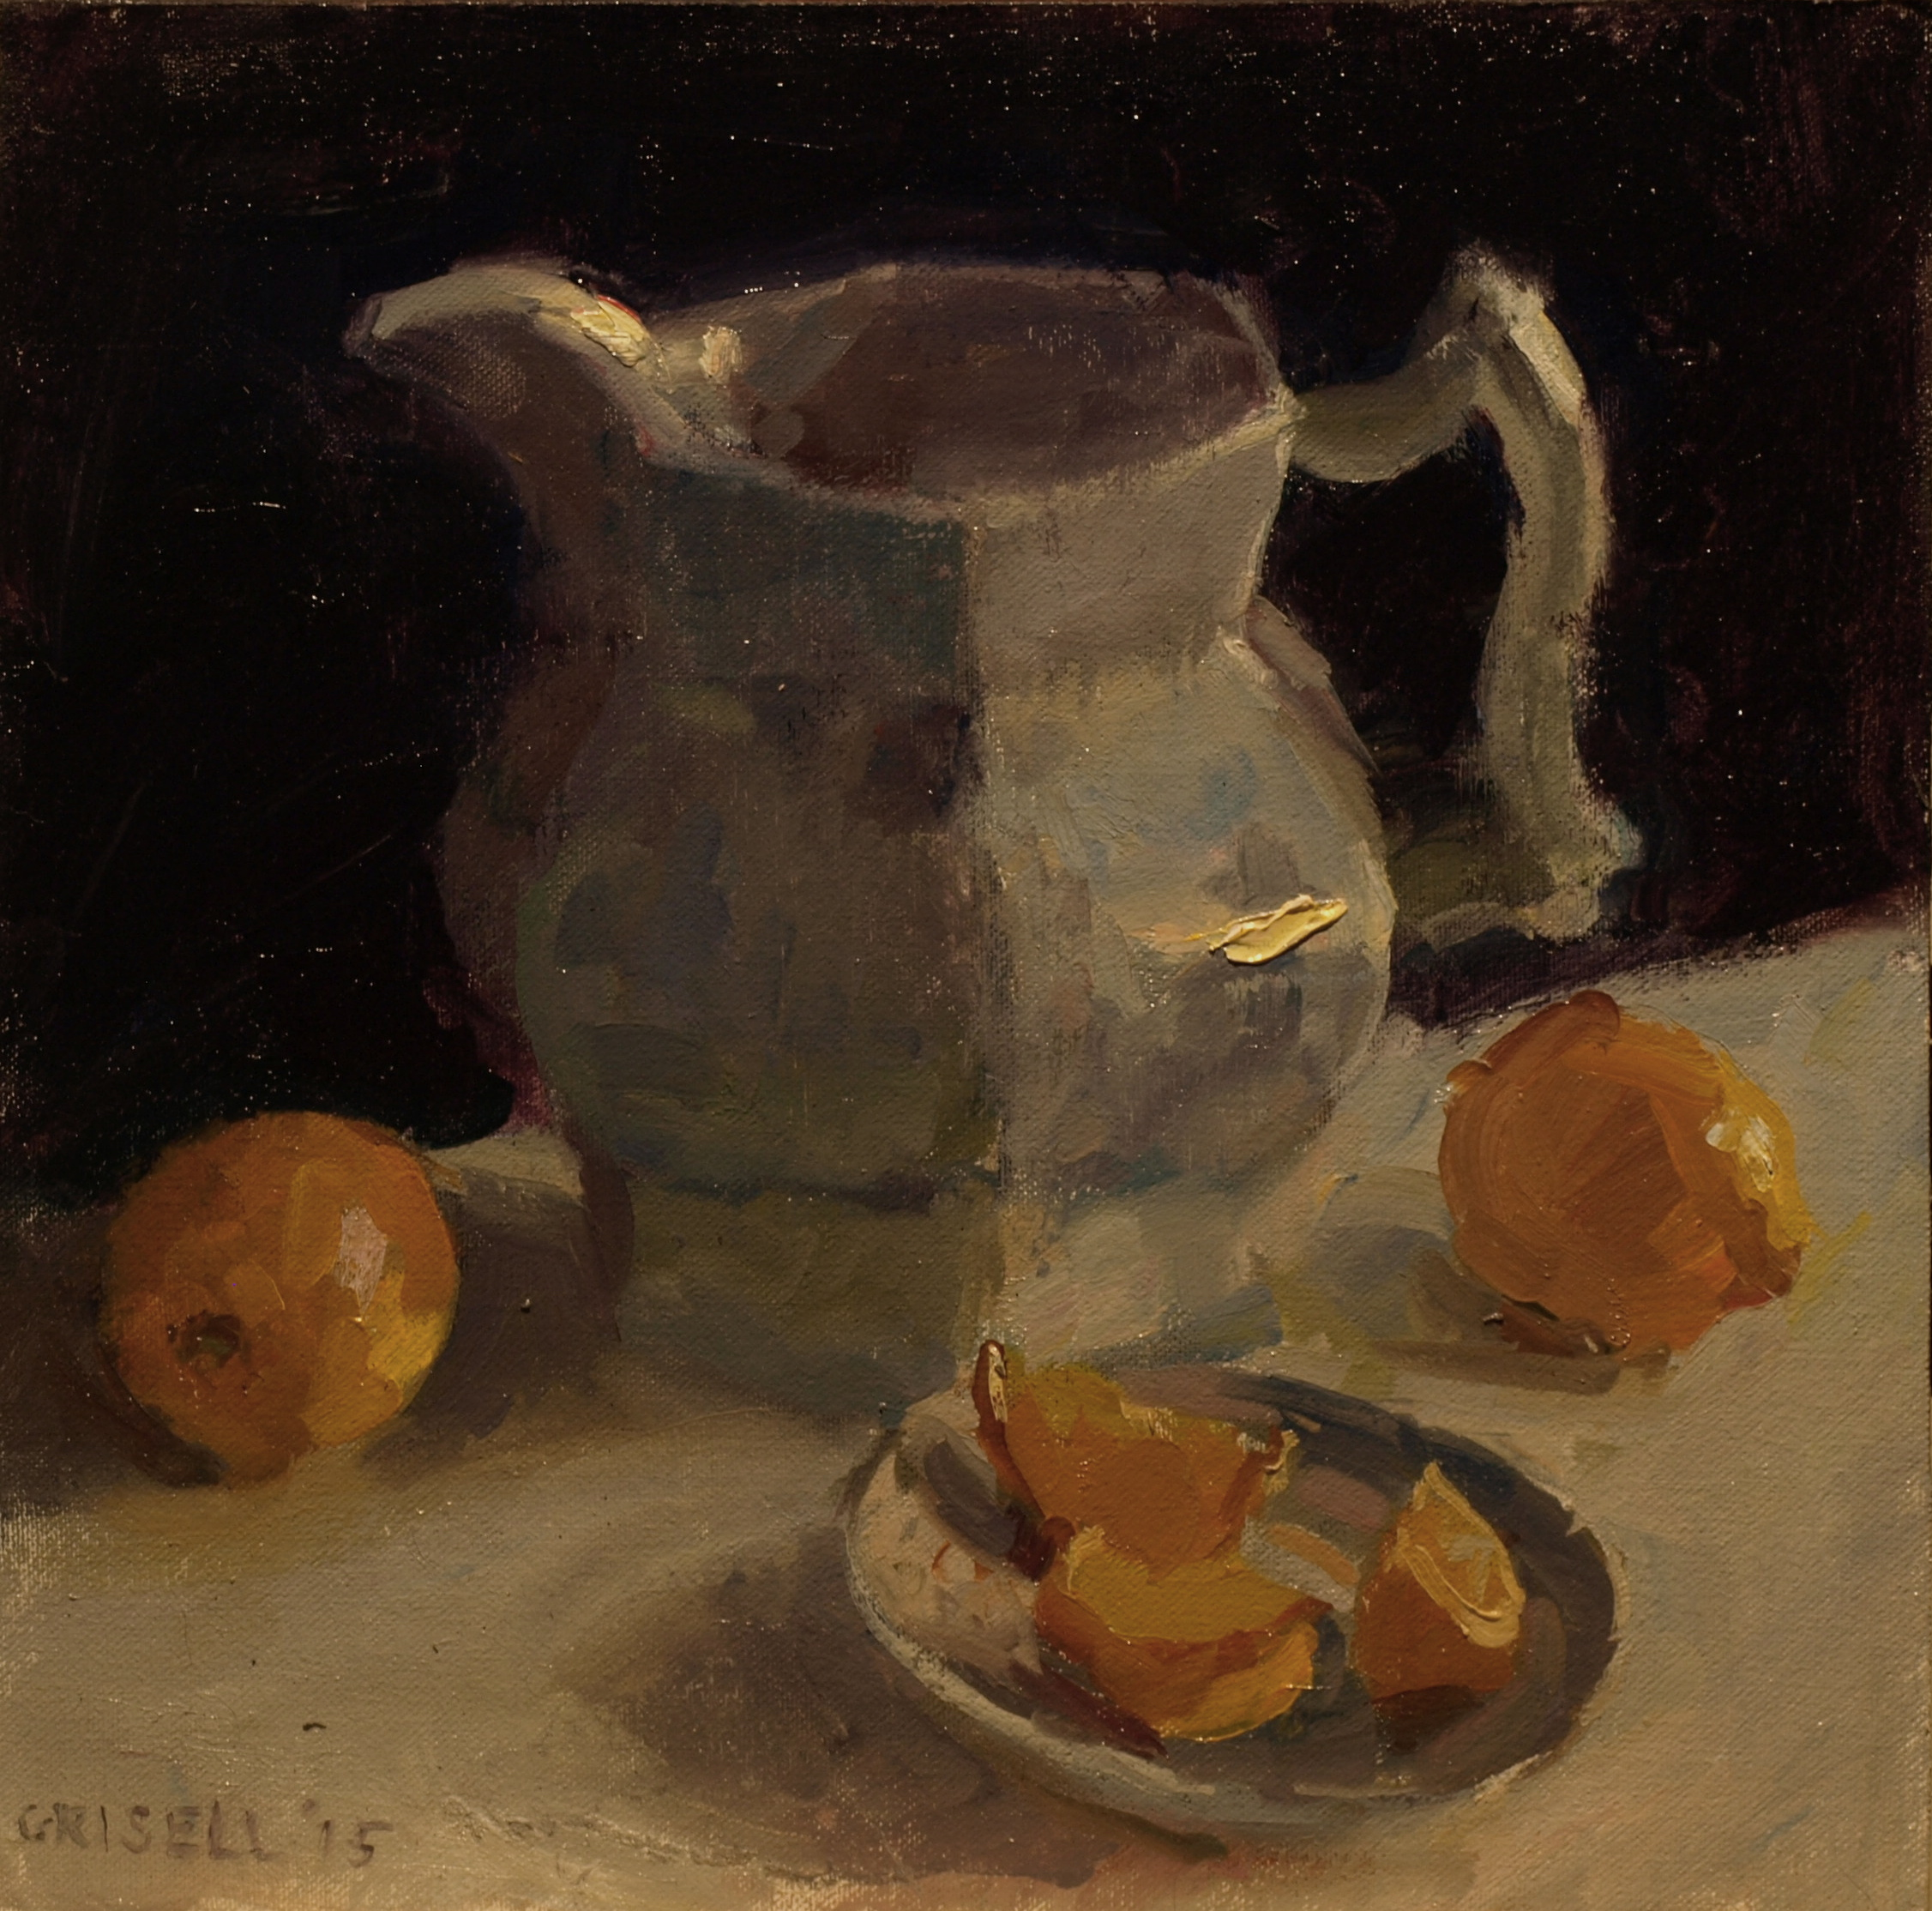 Pitcher and Lemons, Oil on Canvas on Panel, 12 x 12 Inches, by Susan Grisell, $275